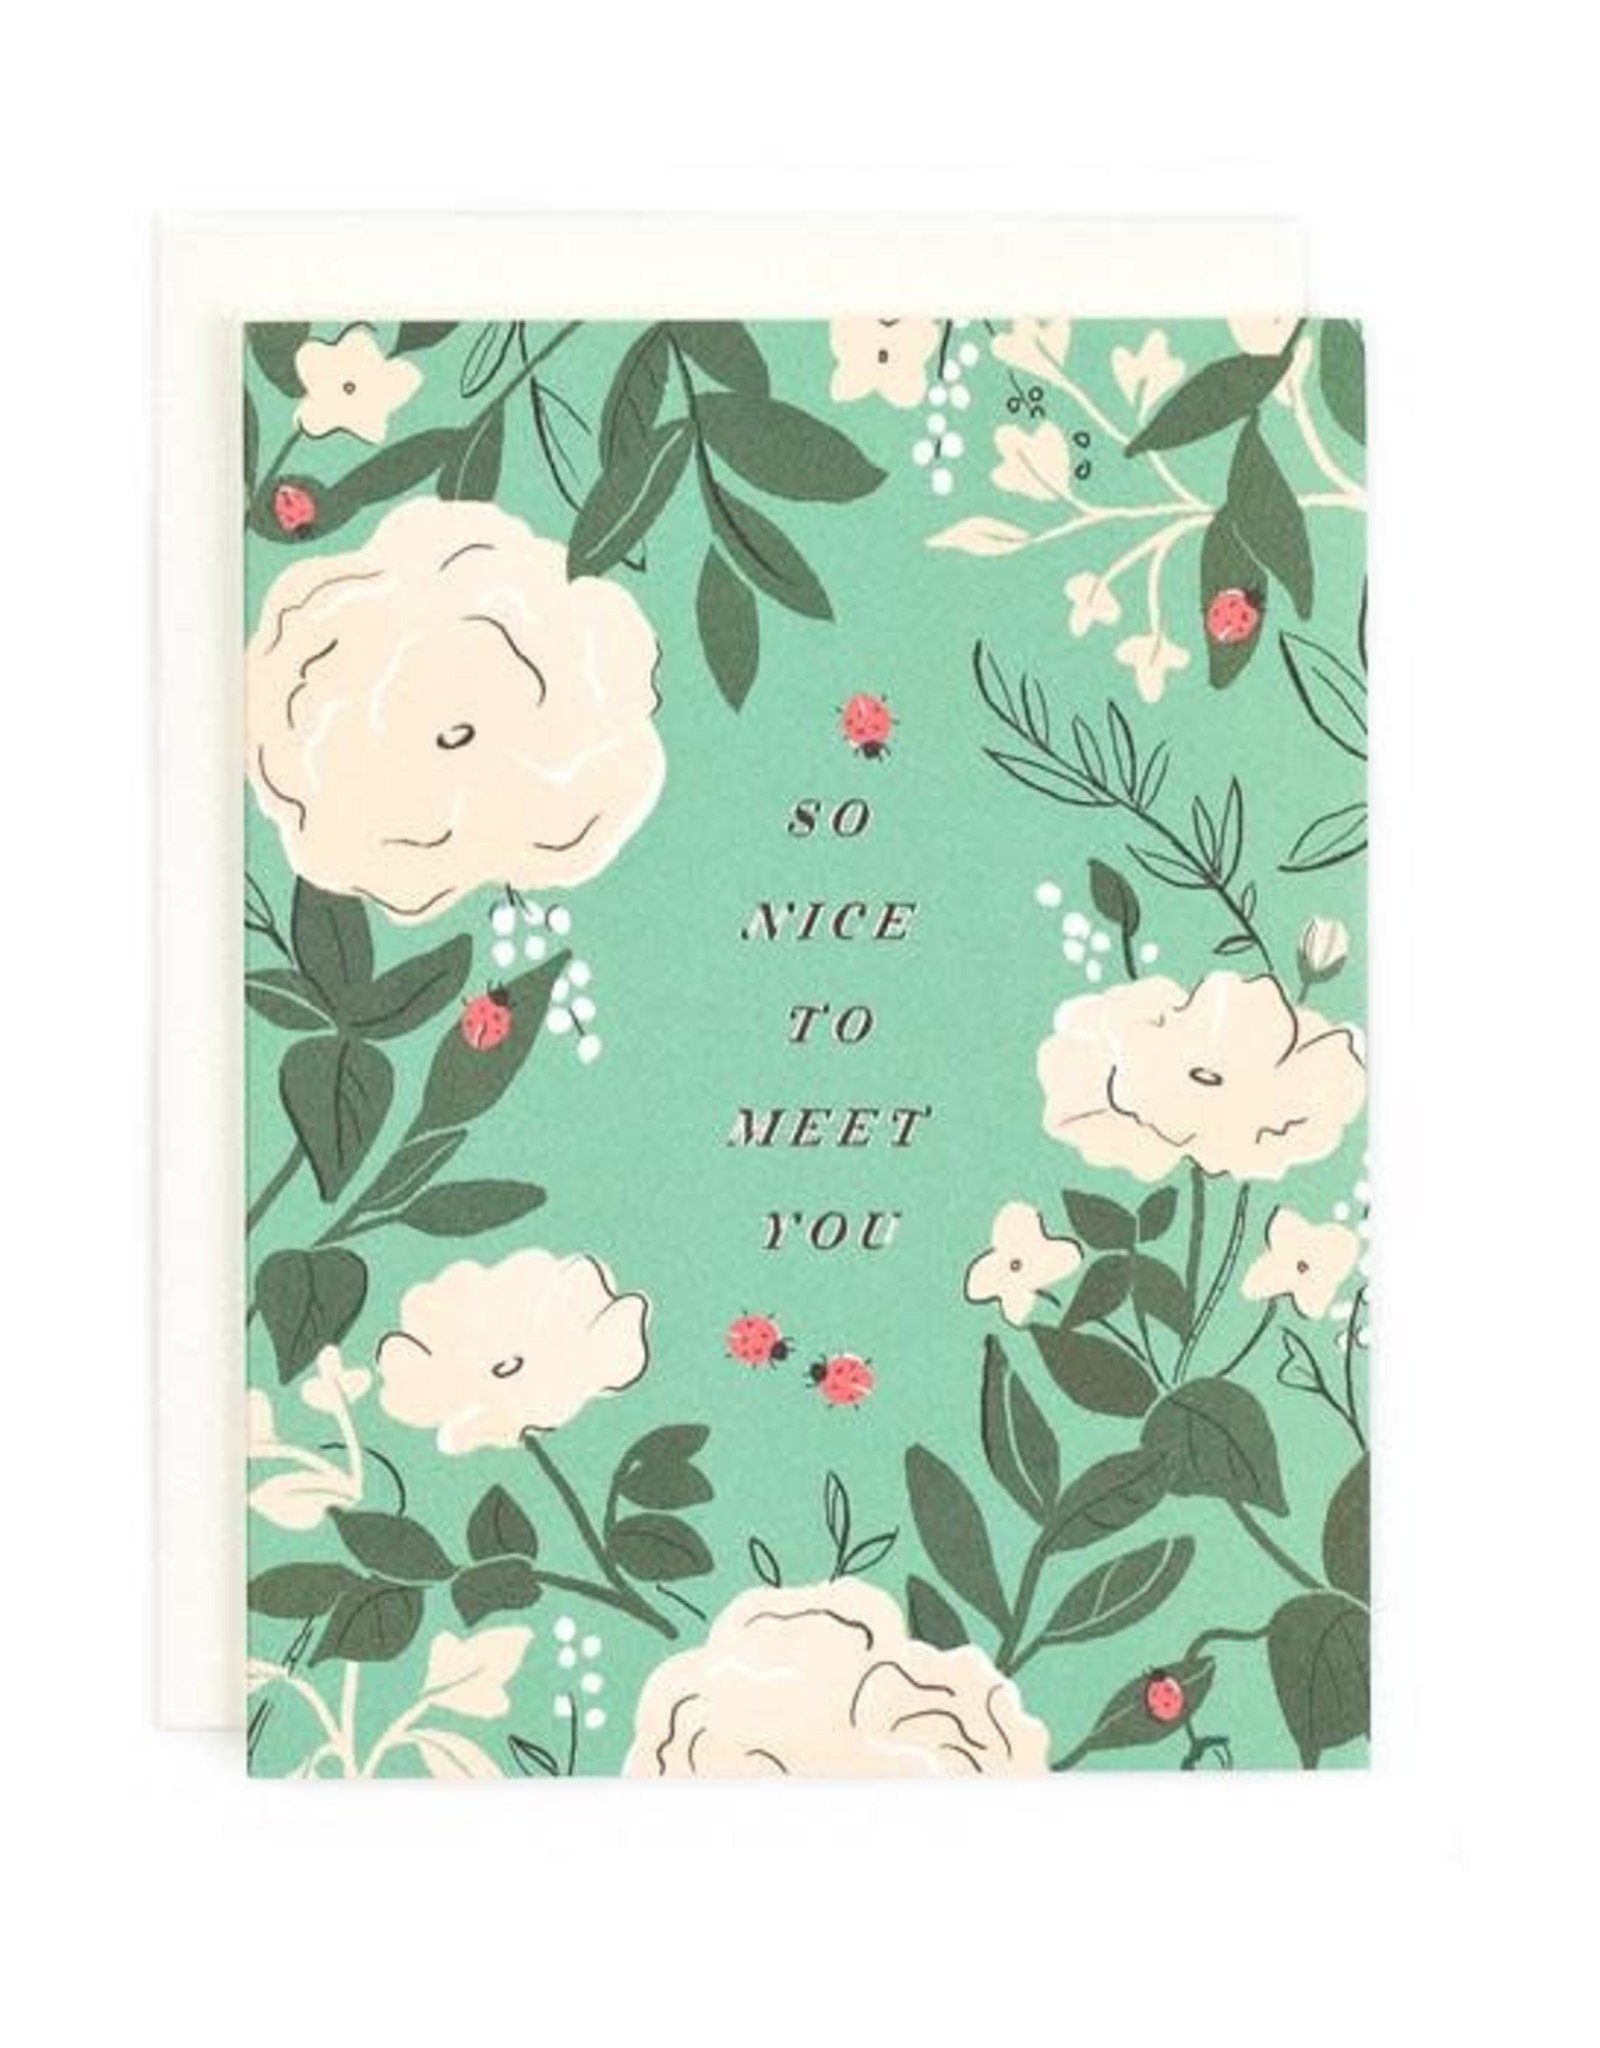 So Nice to Meet You Greeting Card